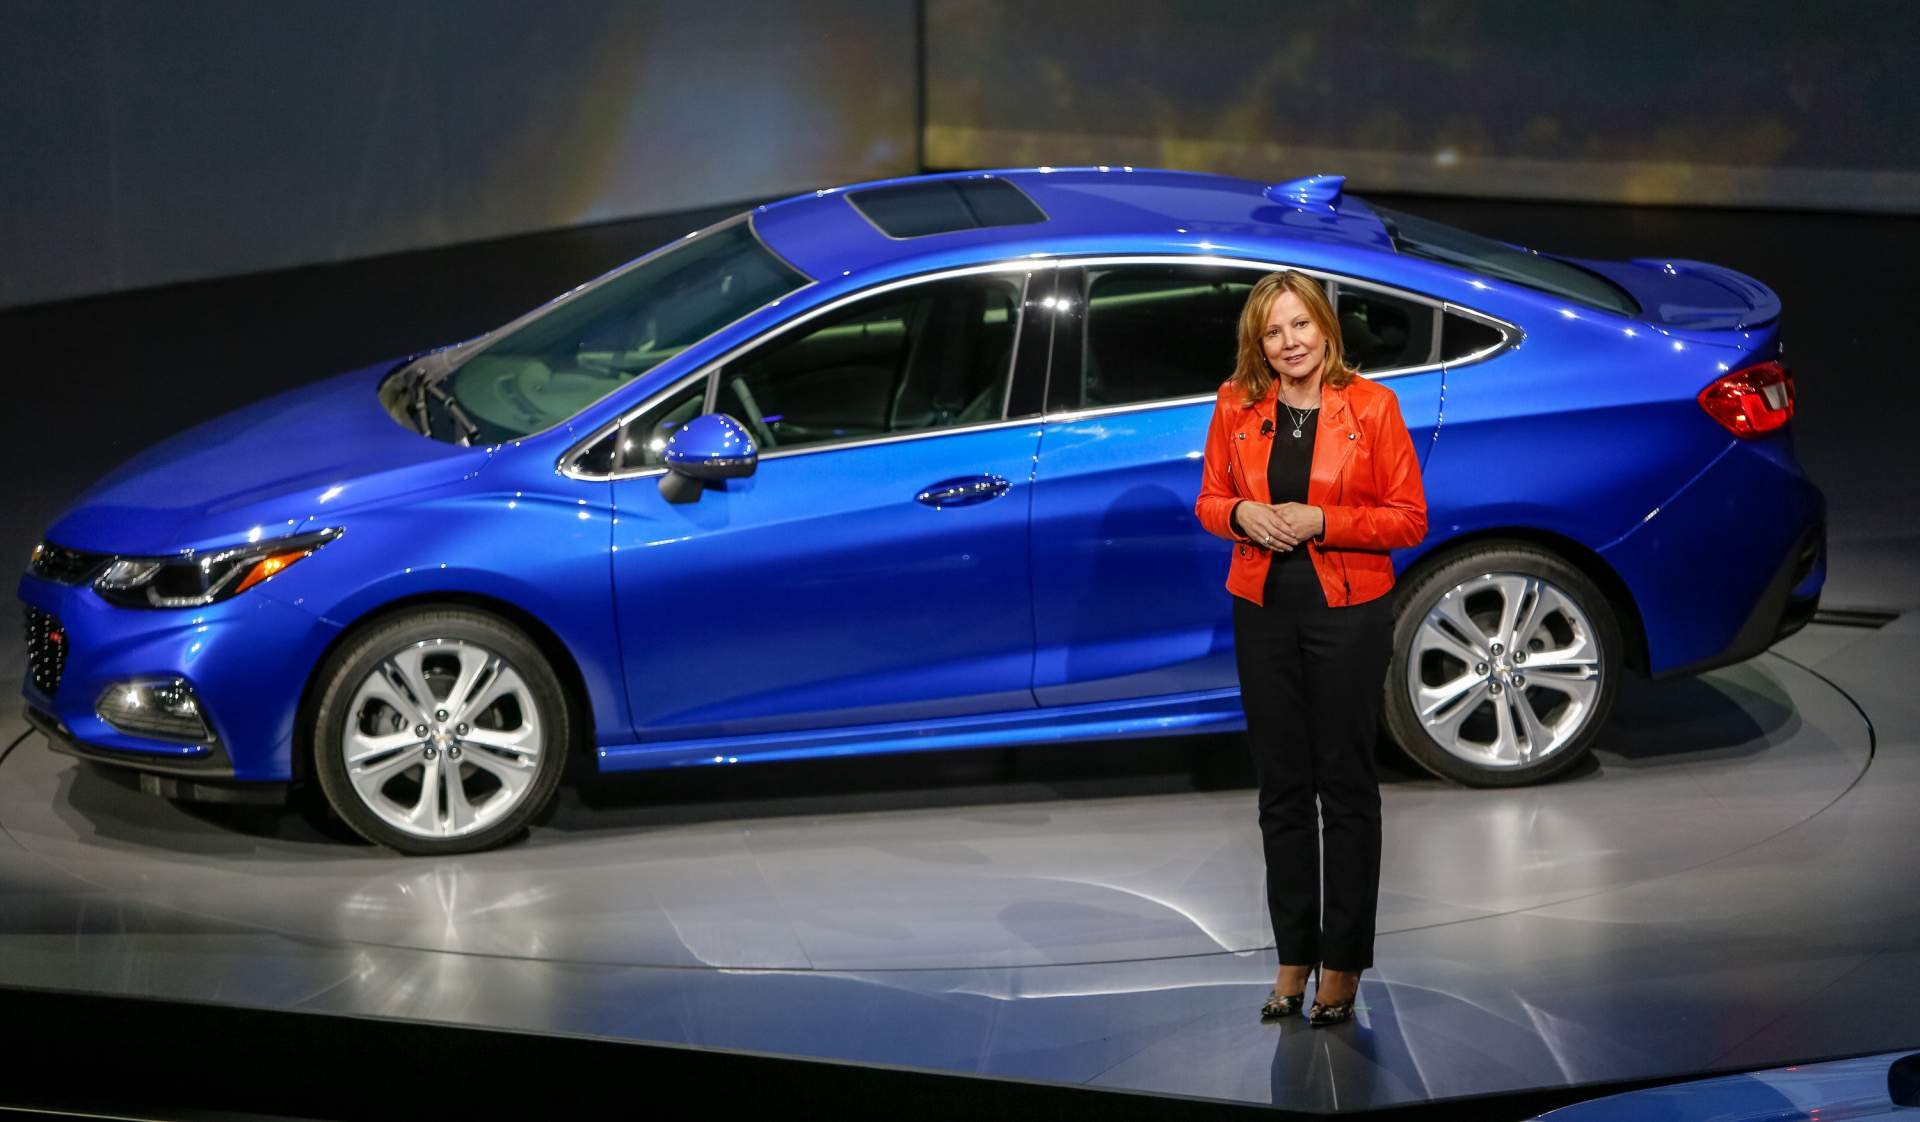 GM's Mary Barra vows 'open mind,' makes no promises on plant closings